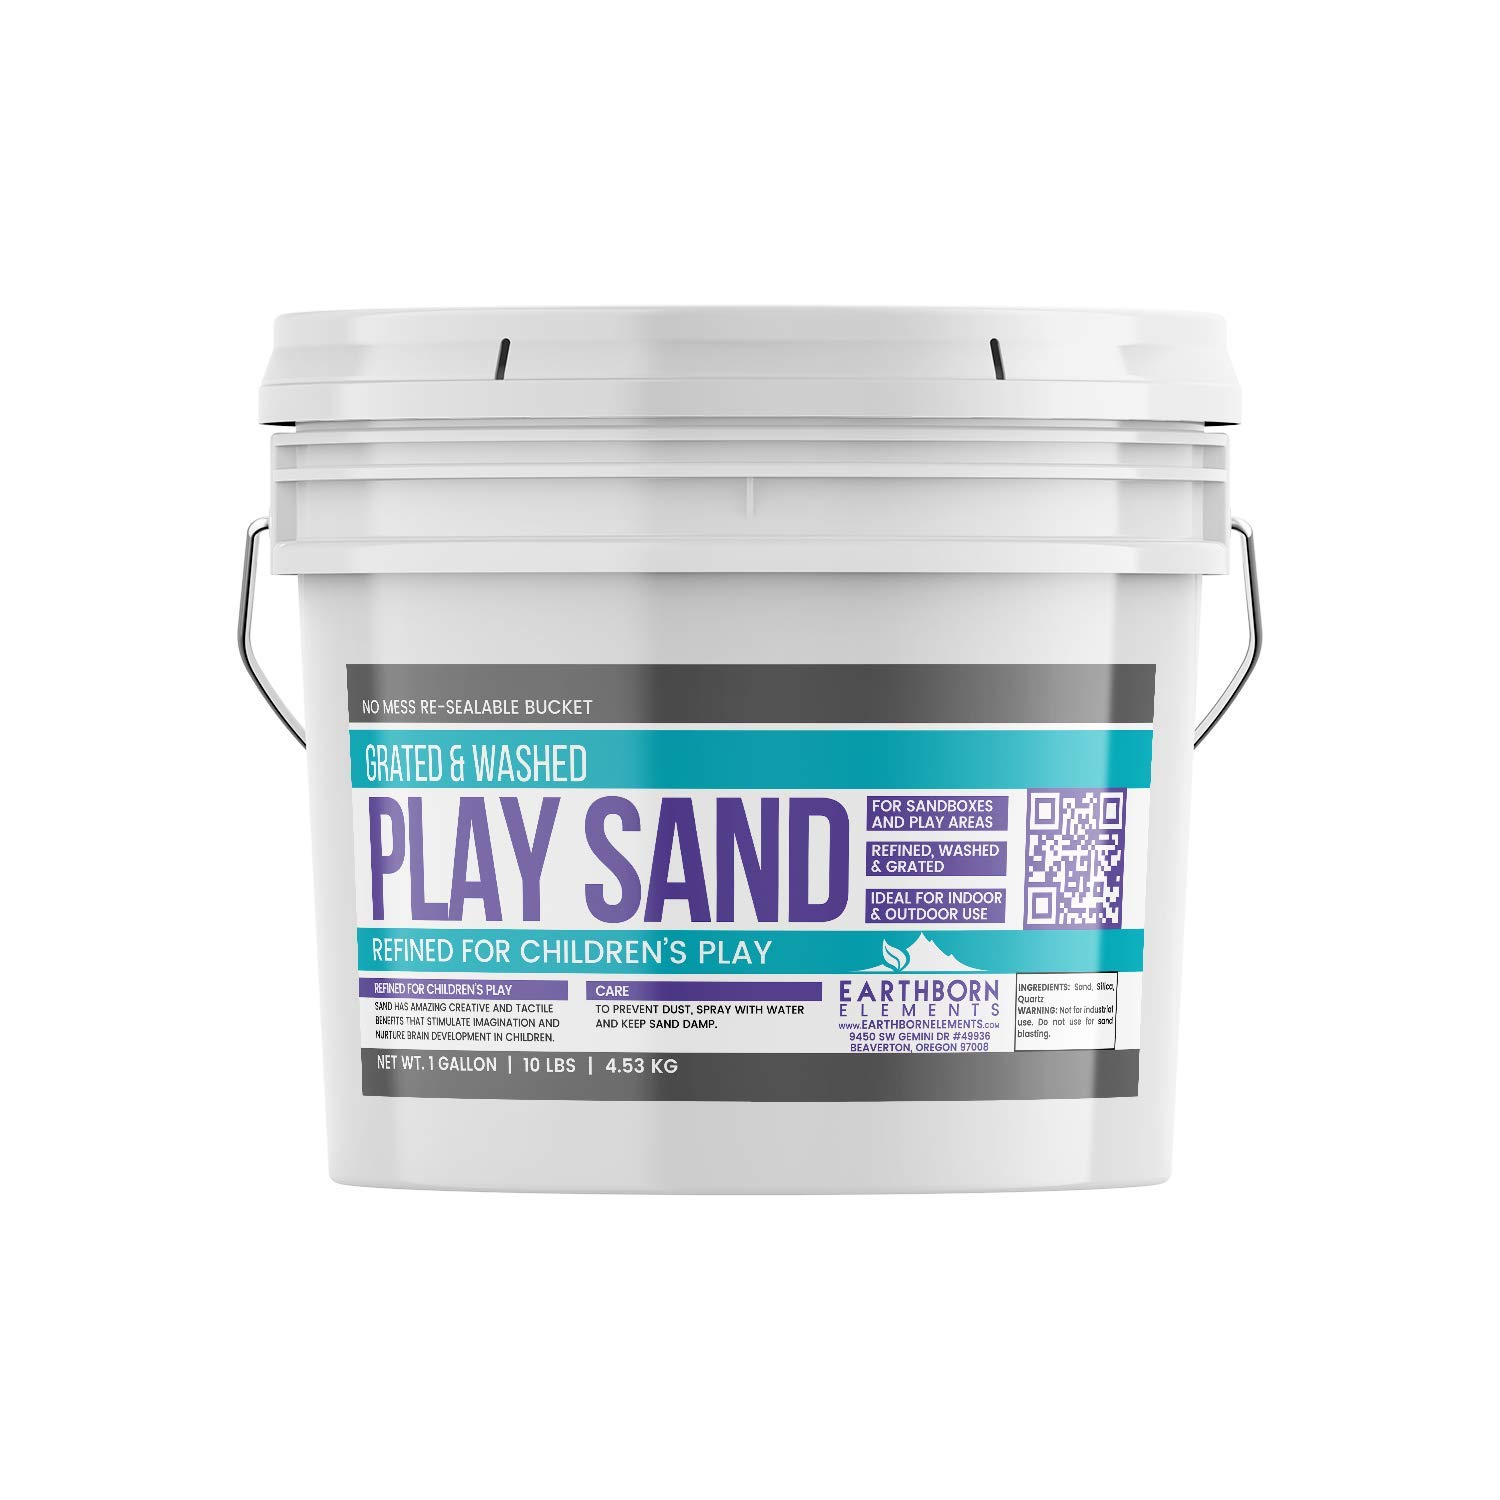 Earthborn Elements Play Sand, 1 Gallon Bucket (10 lb),, Building & Molding, Promotes Creativity, Sandbox & Play Areas, Indoor/Outdoor, Resealable Bucket by Earthborn Elements